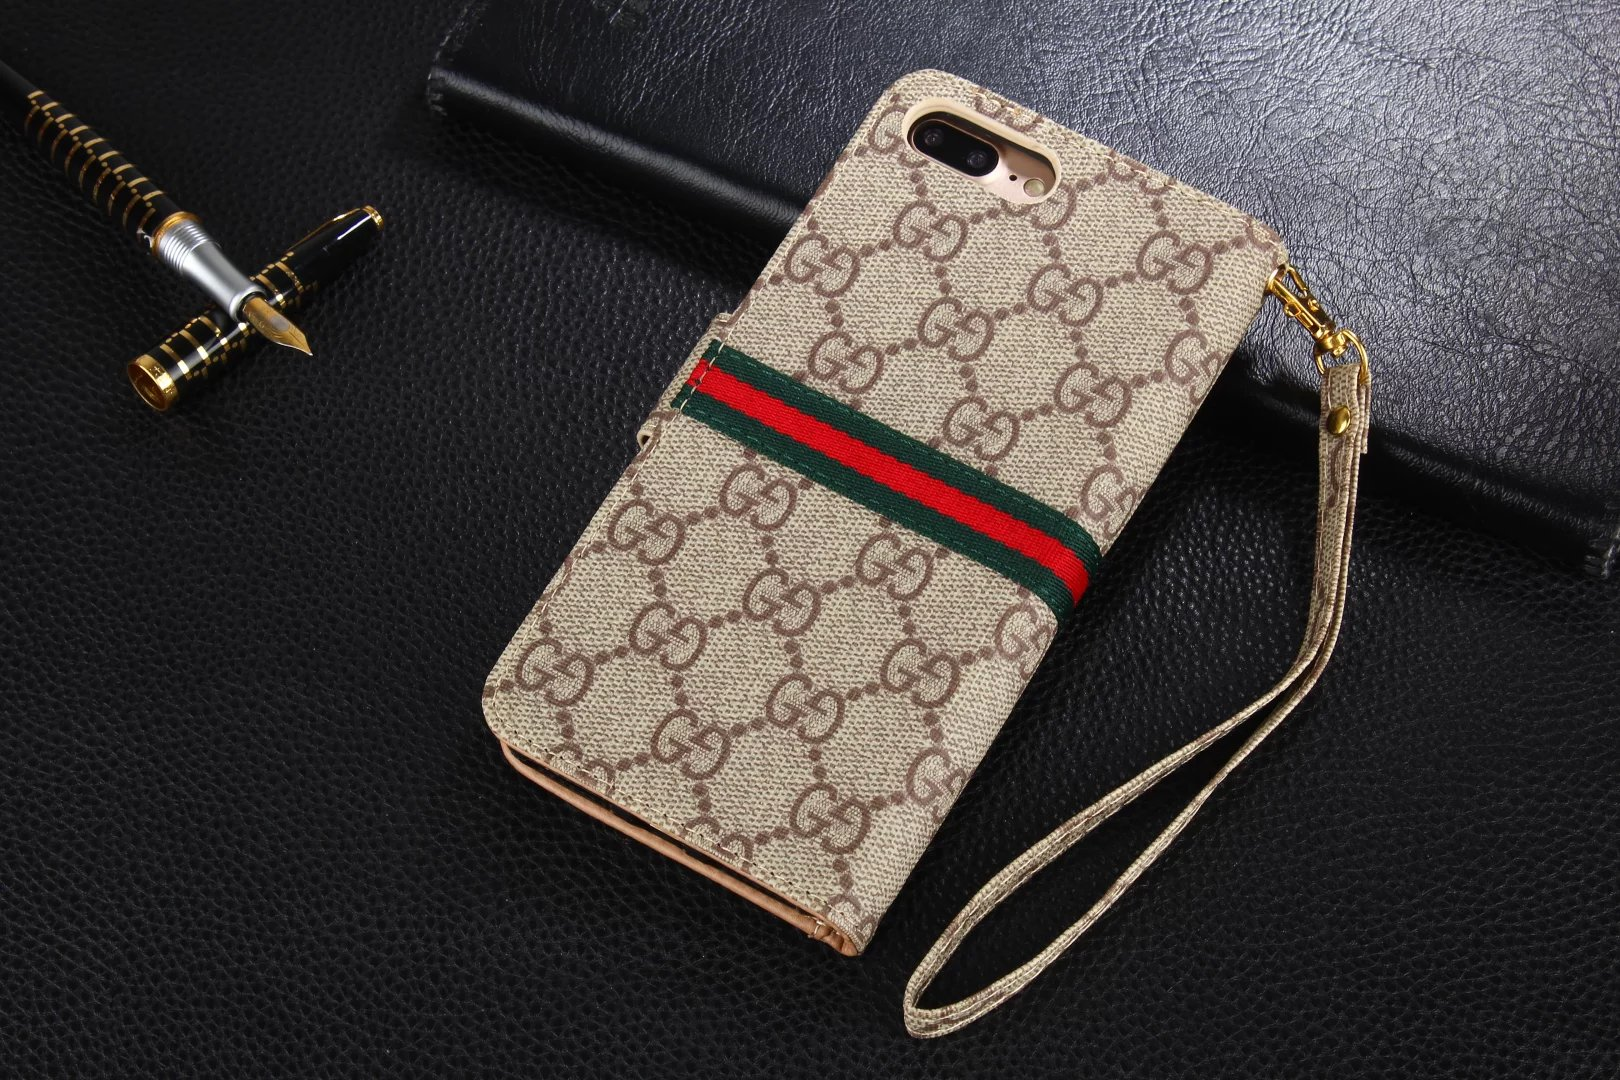 phone cases for the iphone 8 Plus in case iphone 8 Plus Gucci iphone 8 Plus case 8 Plus iphone cases designer cell cases iPhone 8 Plusg cover iPhone 8 Plus cases with designs apple phone covers iphone 8 Plus cases and accessories